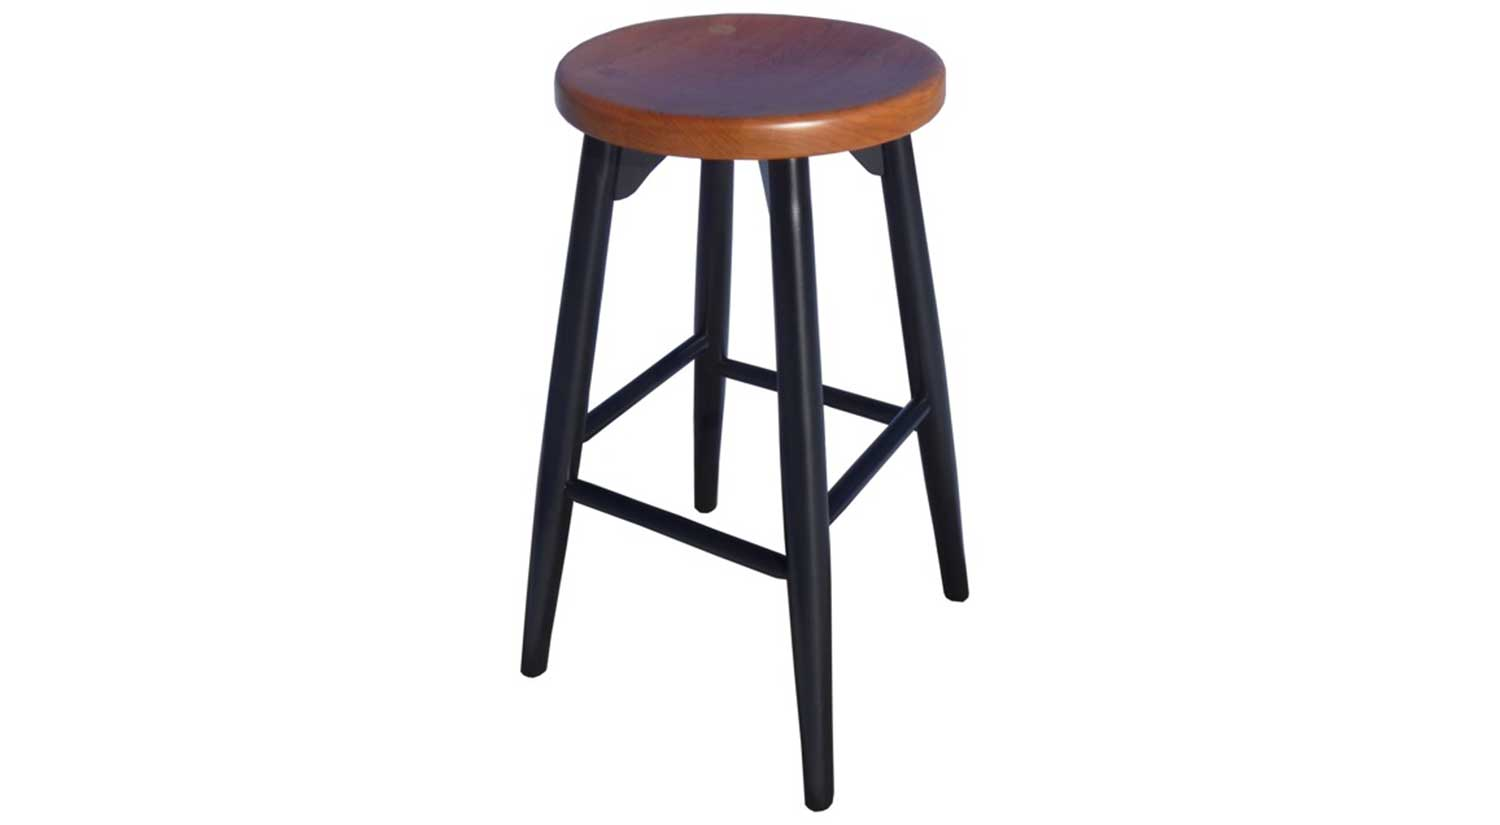 Miraculous Circle Furniture Backless Counter And Bar Stool Stools Caraccident5 Cool Chair Designs And Ideas Caraccident5Info